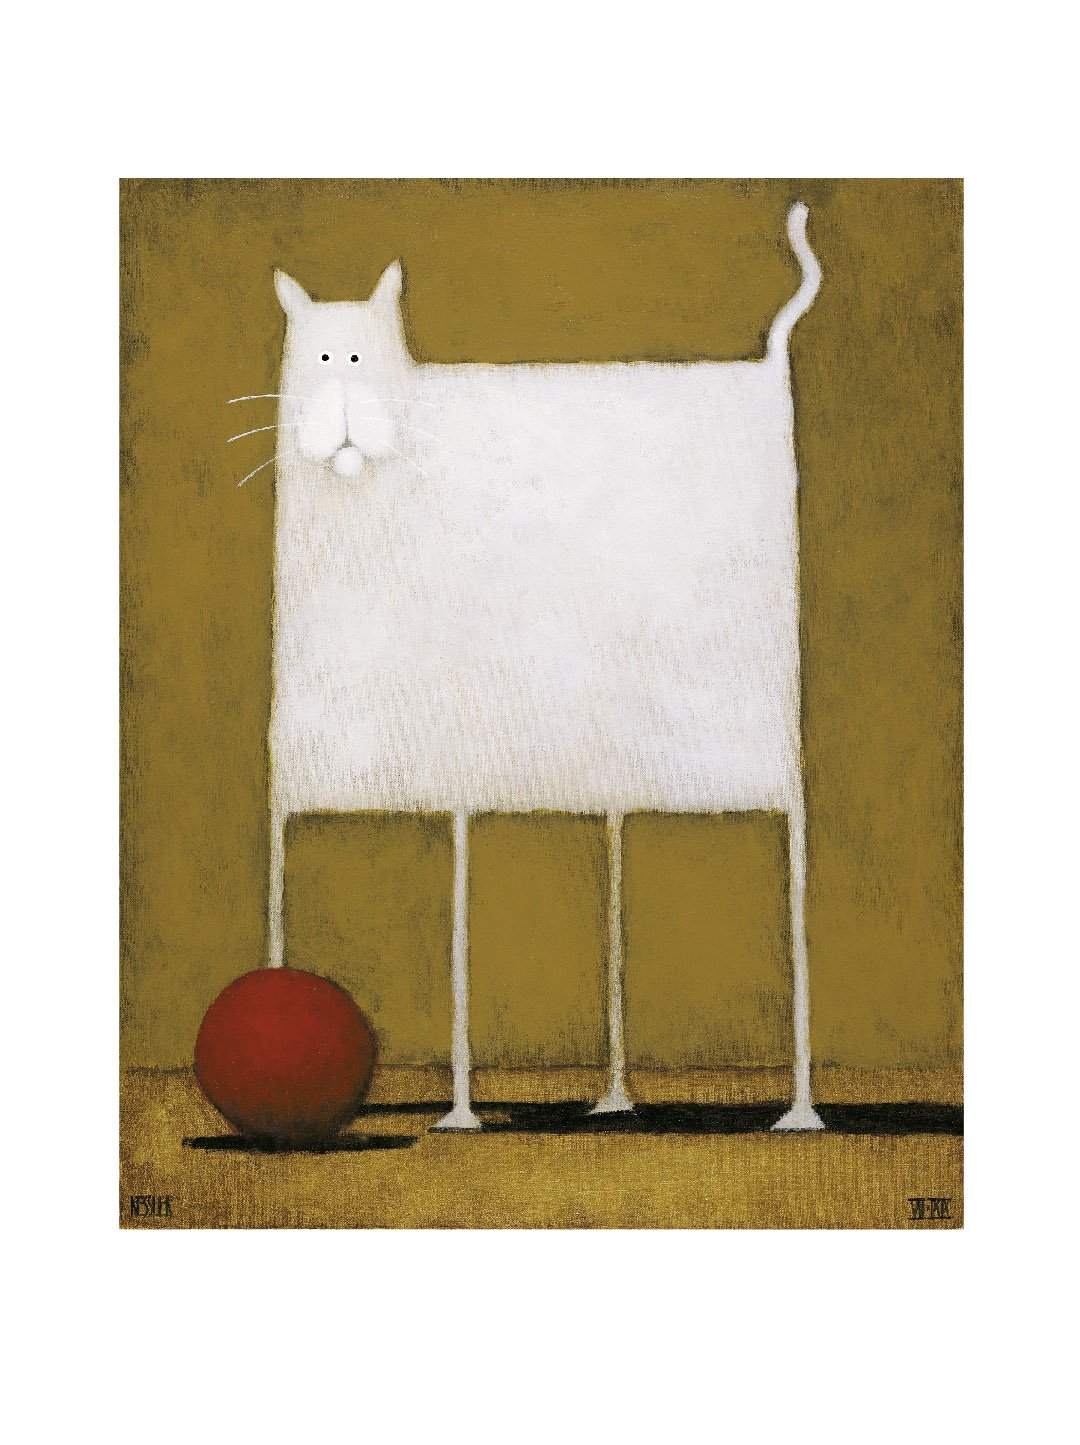 White Cat with Ball Art Print Wall Poster 24x30cm